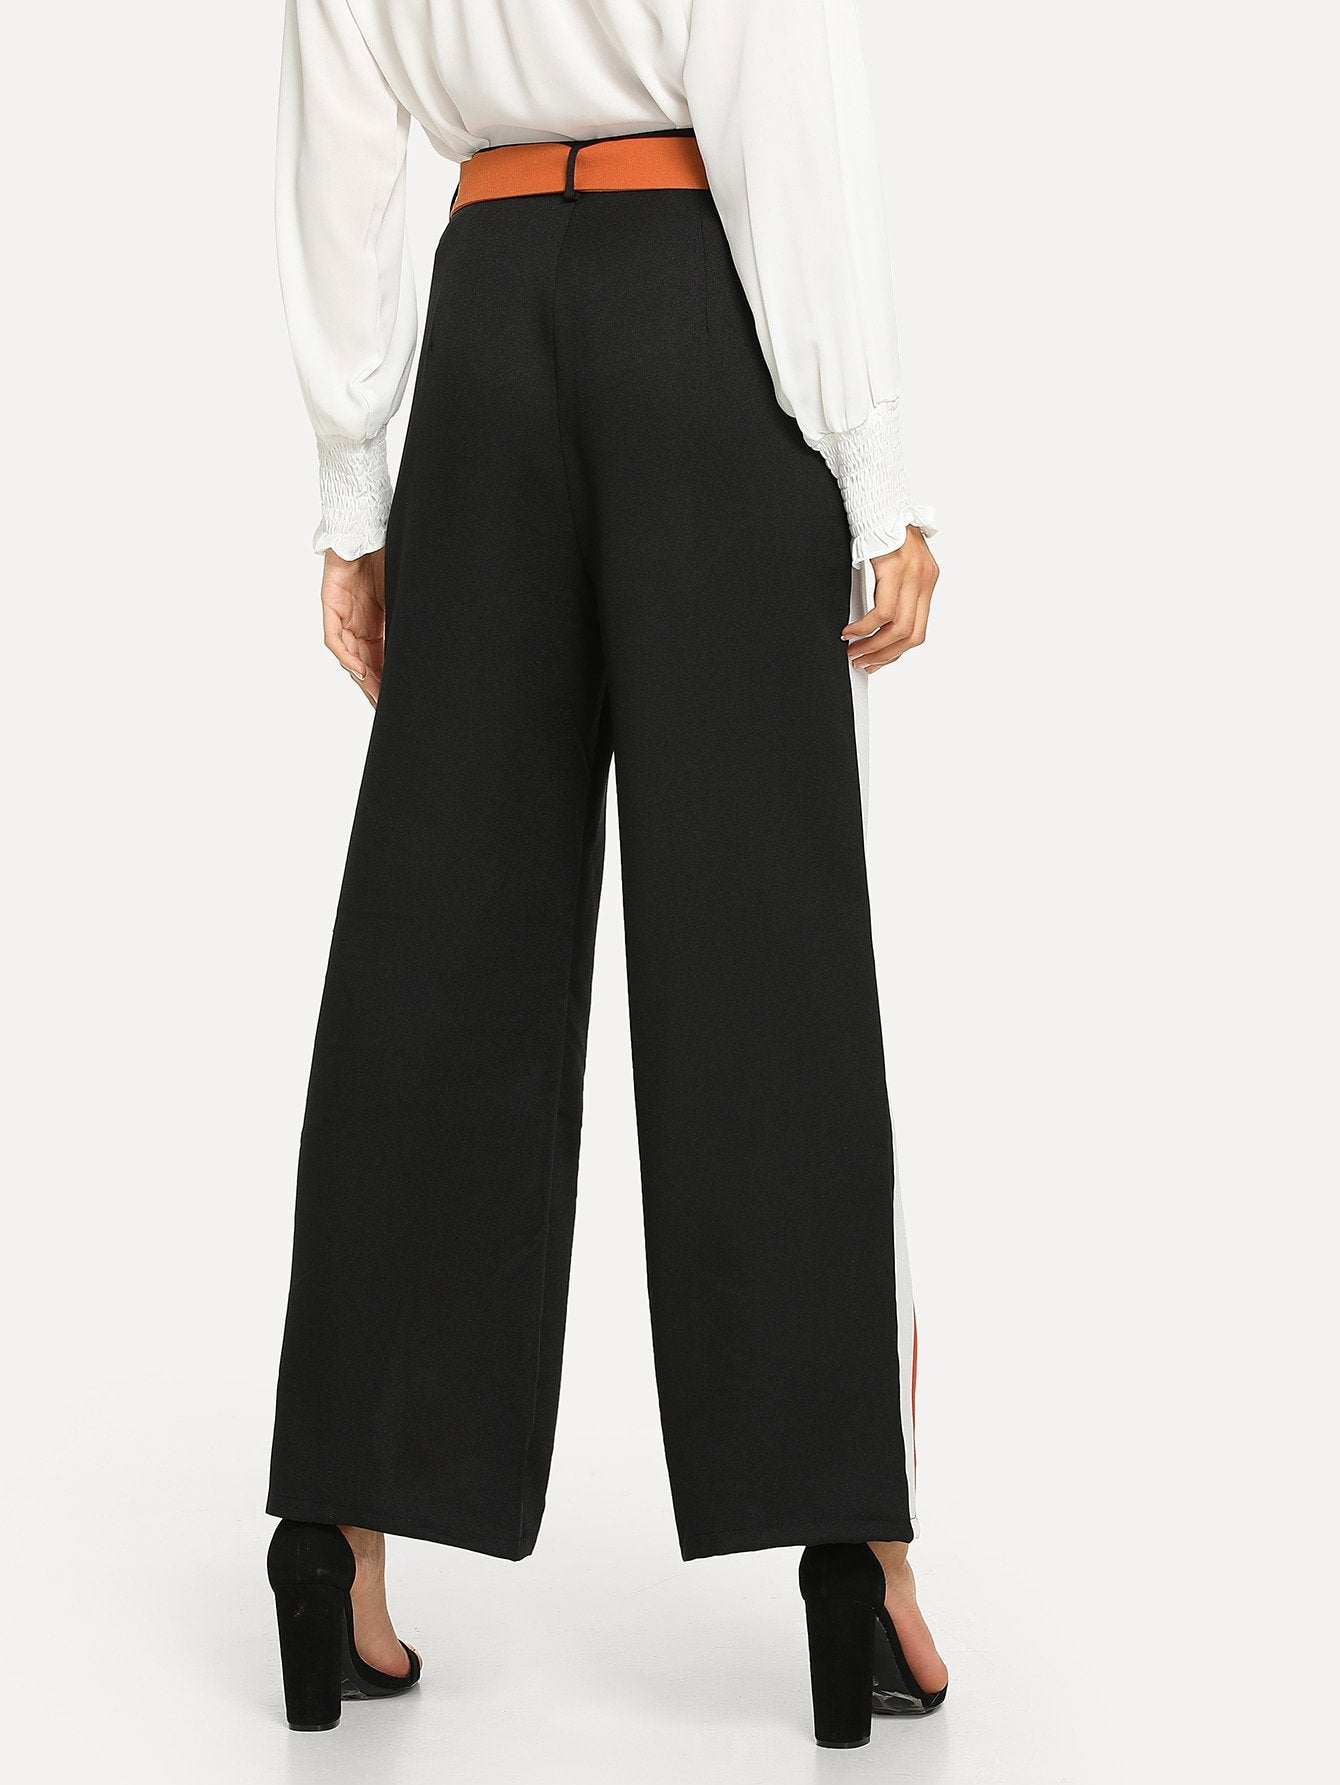 Striped Ring Detail Belted Pants